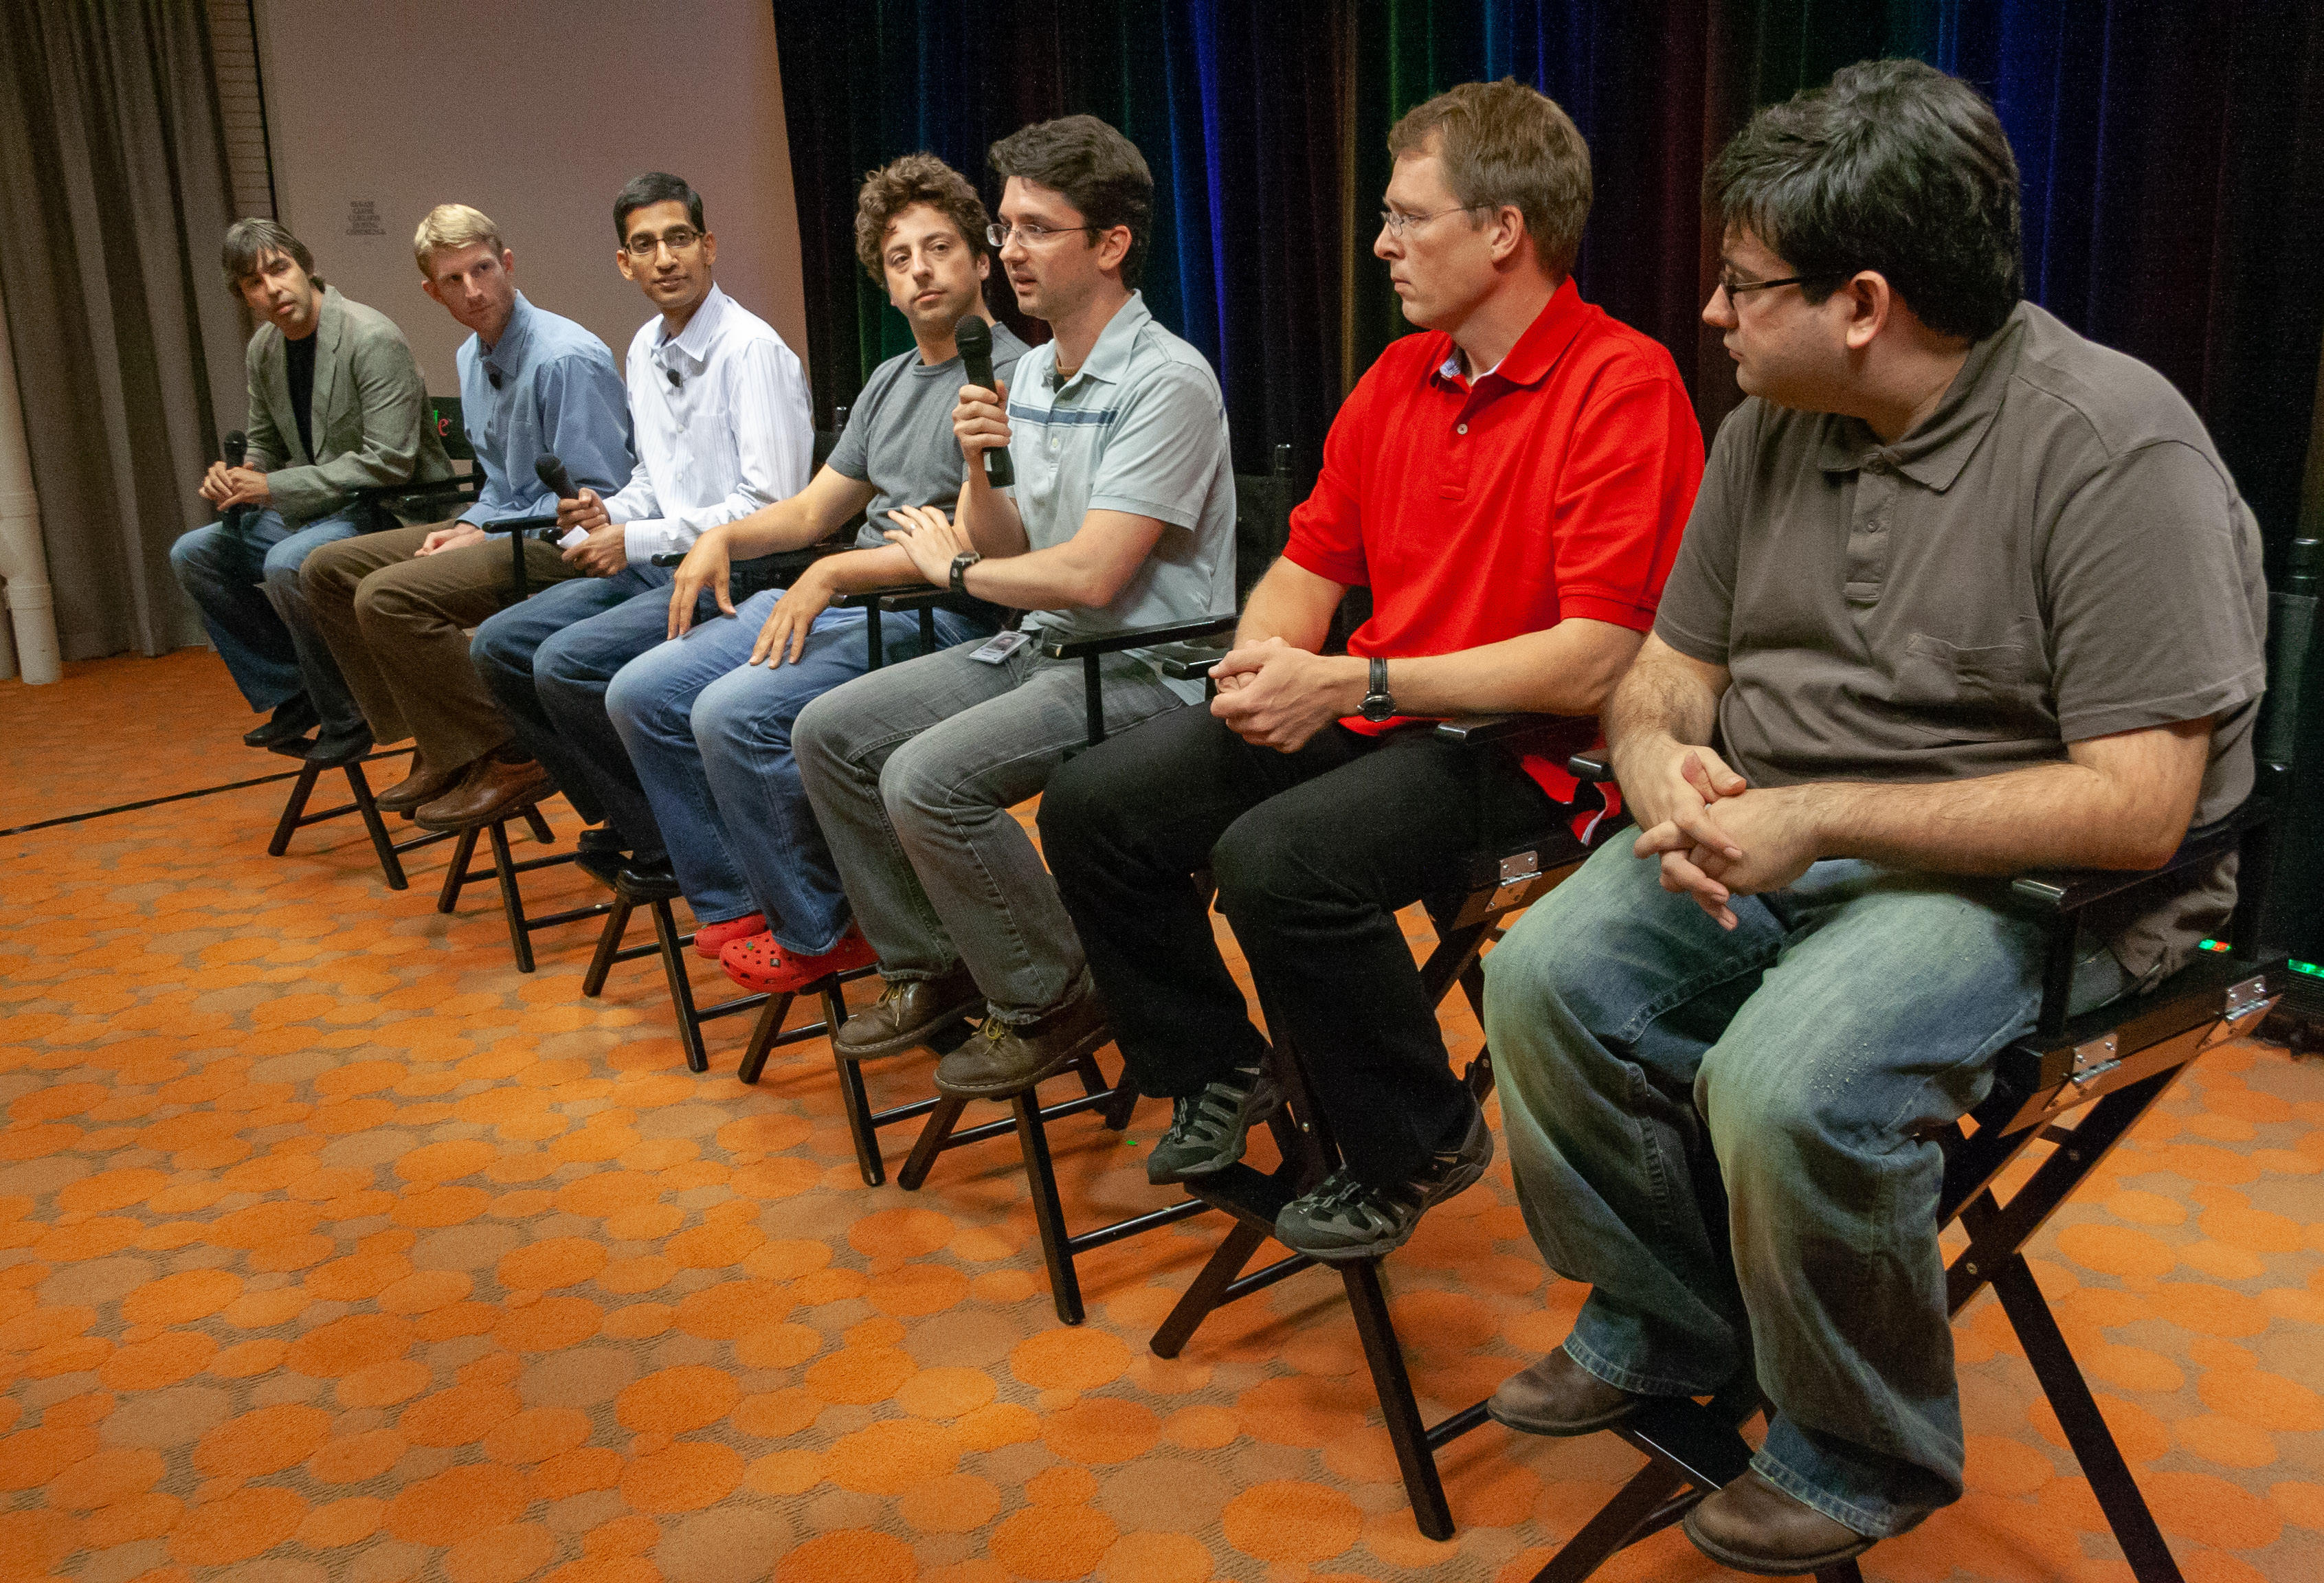 From left to right are Larry Page, Brian Rakowski, Sundar Pichai, Sergey Brin, Darin Fisher, Lars Bak and Ben Goodger. Page and Brin are Google's co-founders.